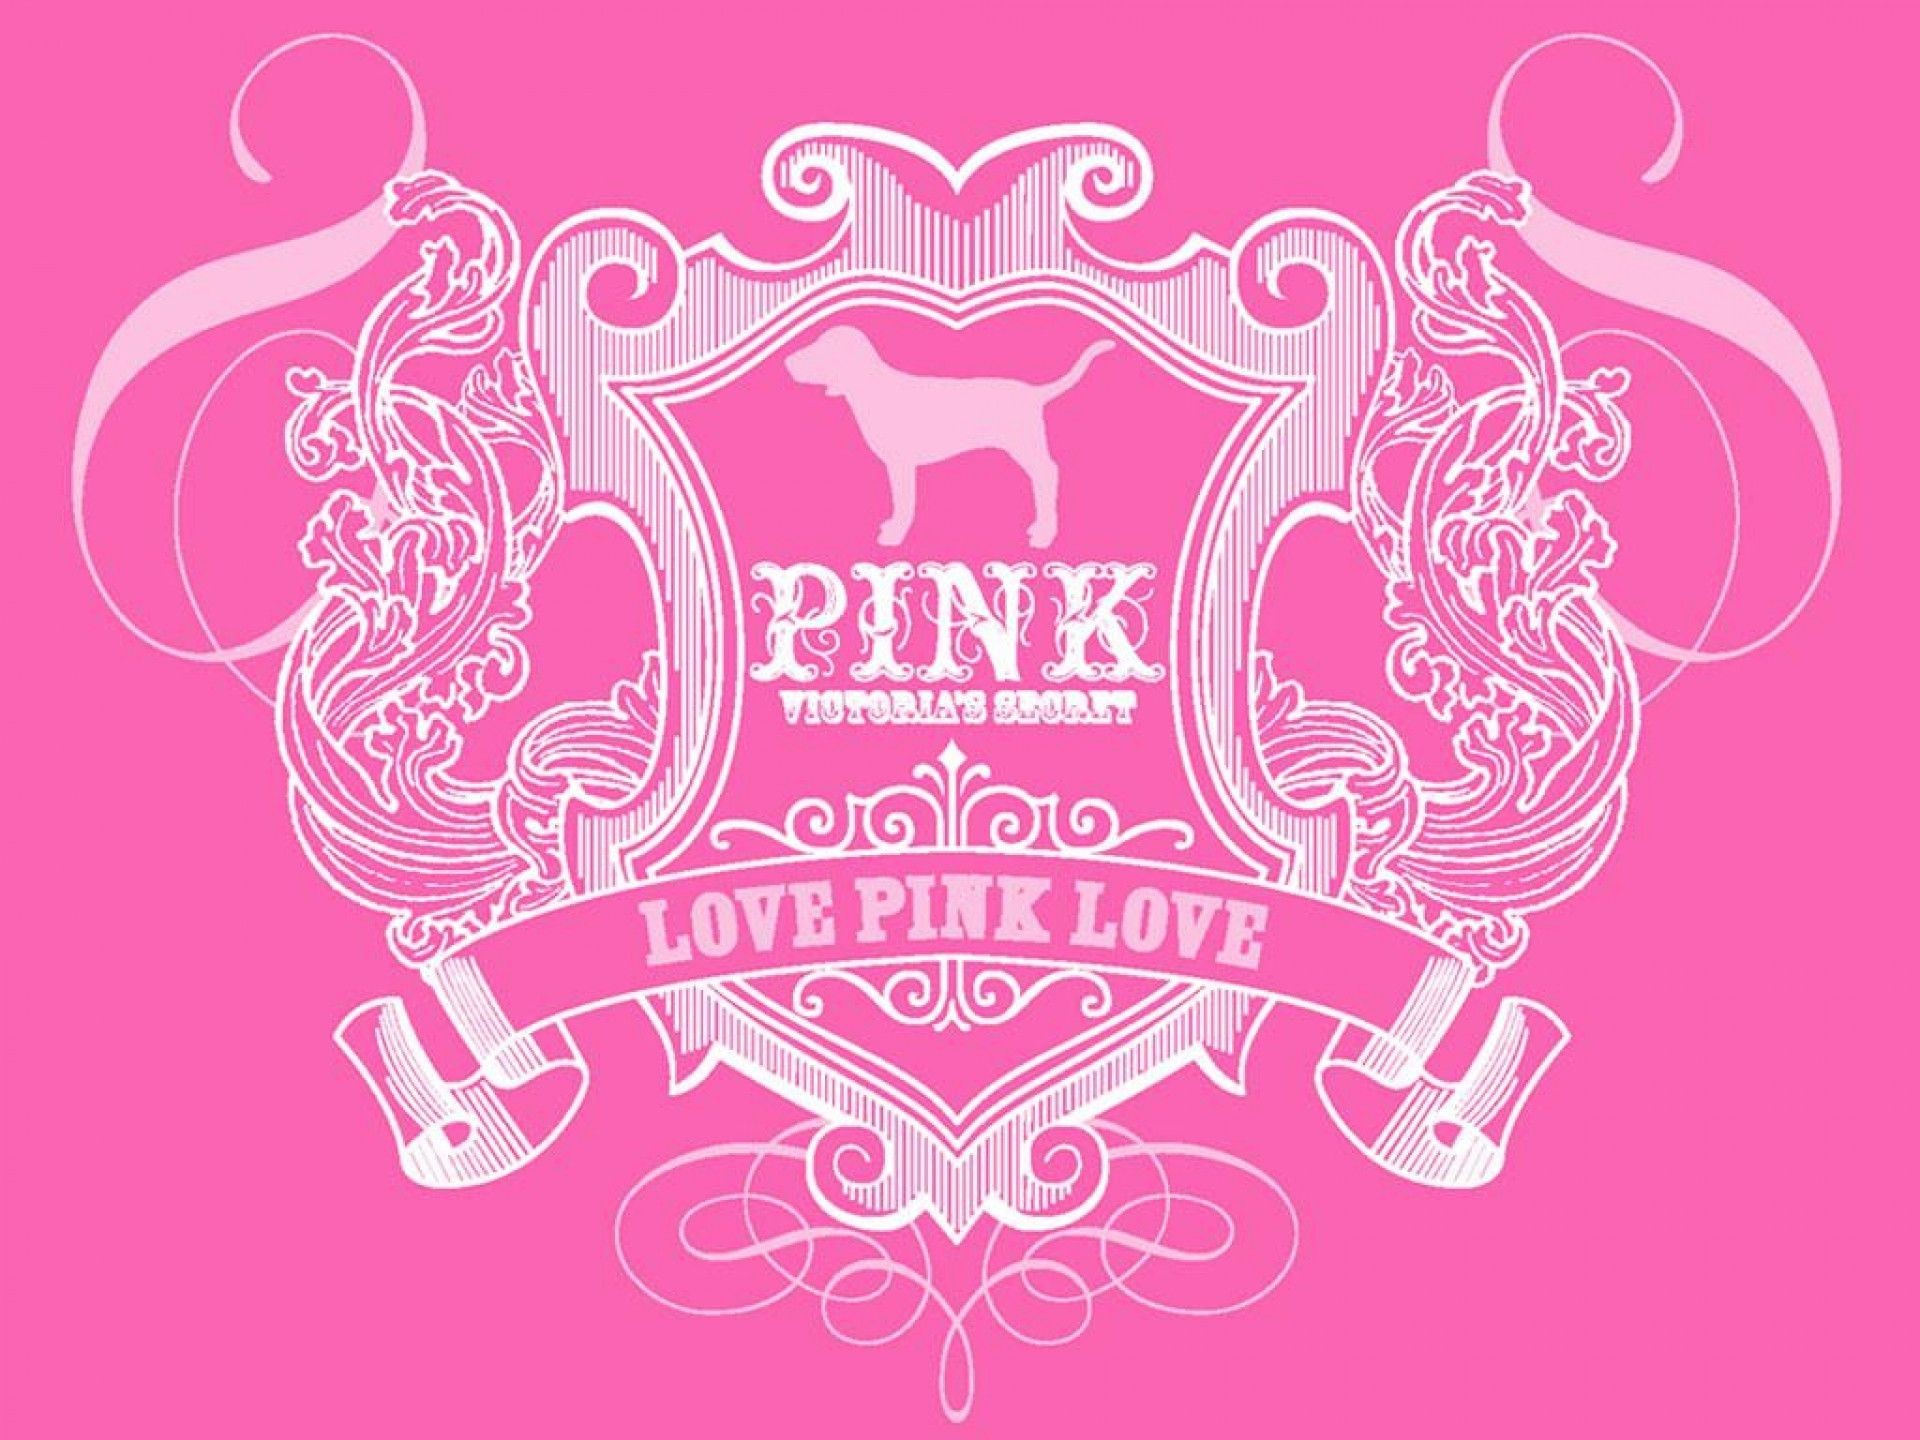 1920x1440 PINK Victoria's Secret Wallpapers Group ...